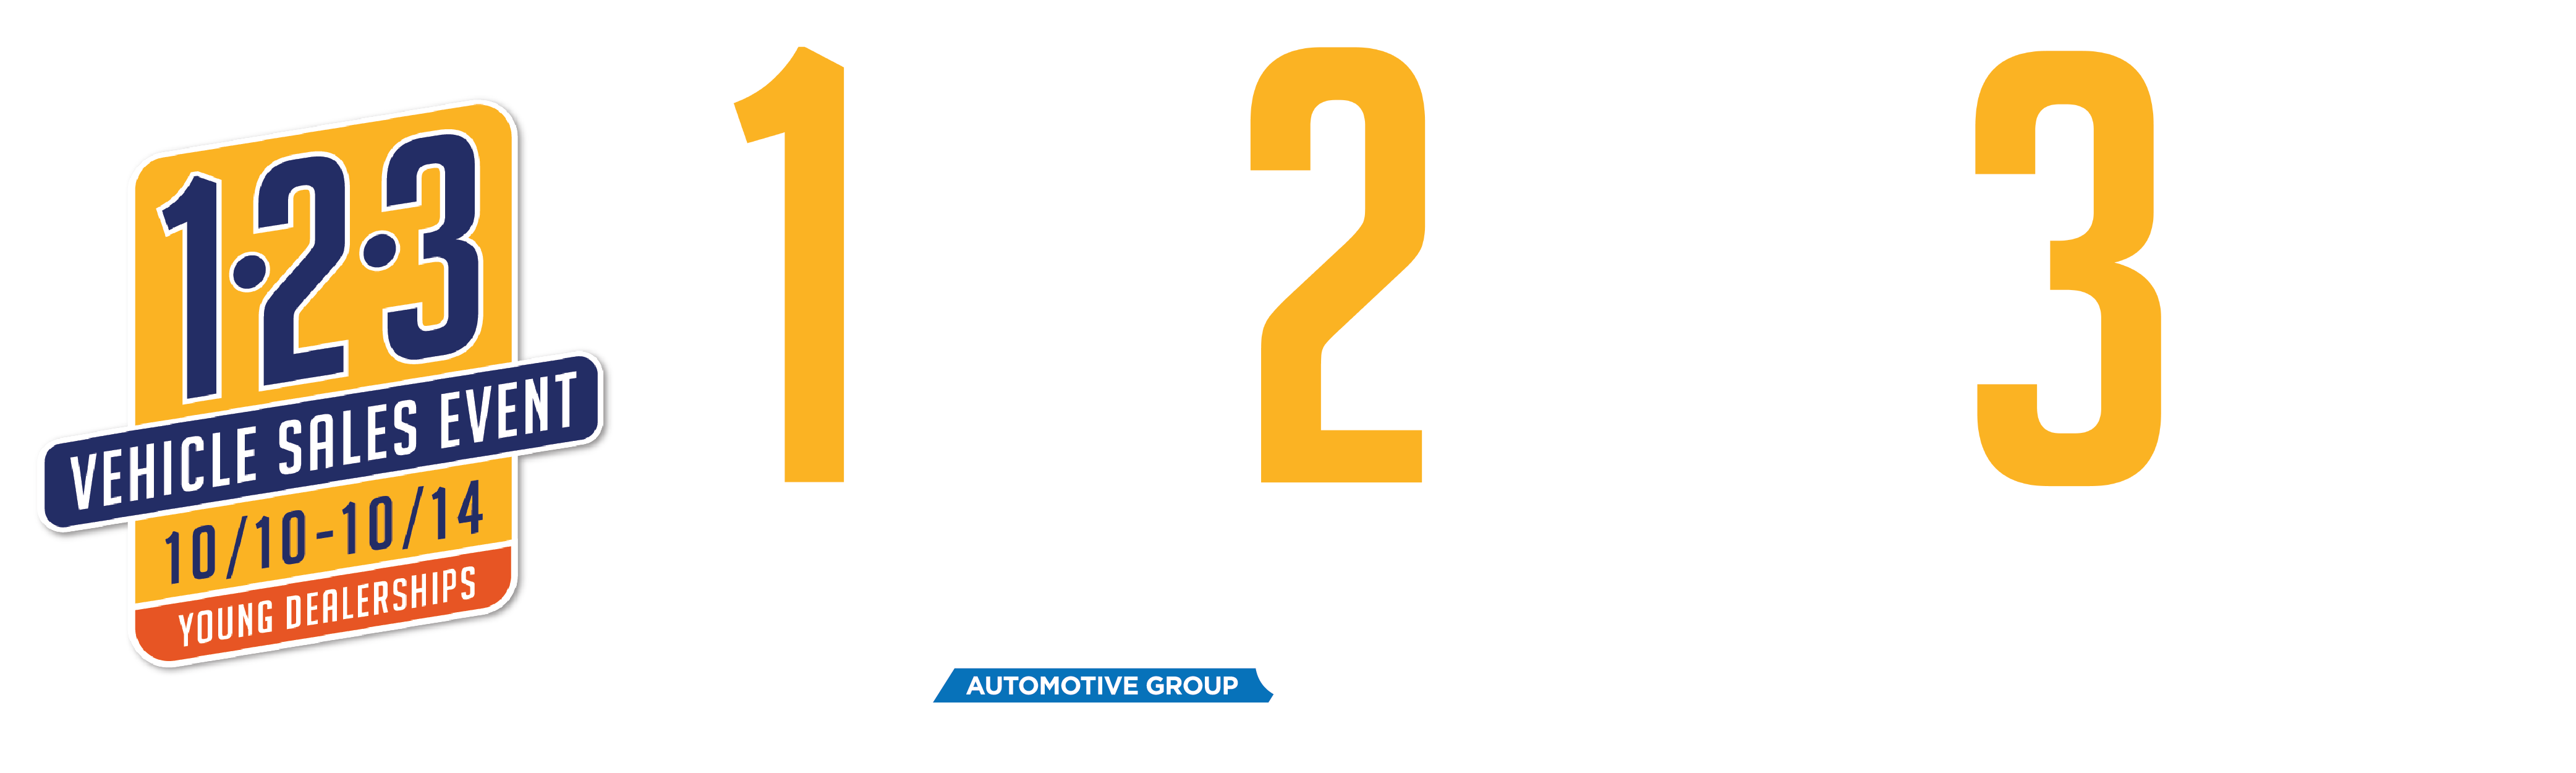 Youngs Auto Sales >> 123 Sales Event Young Automotive Group